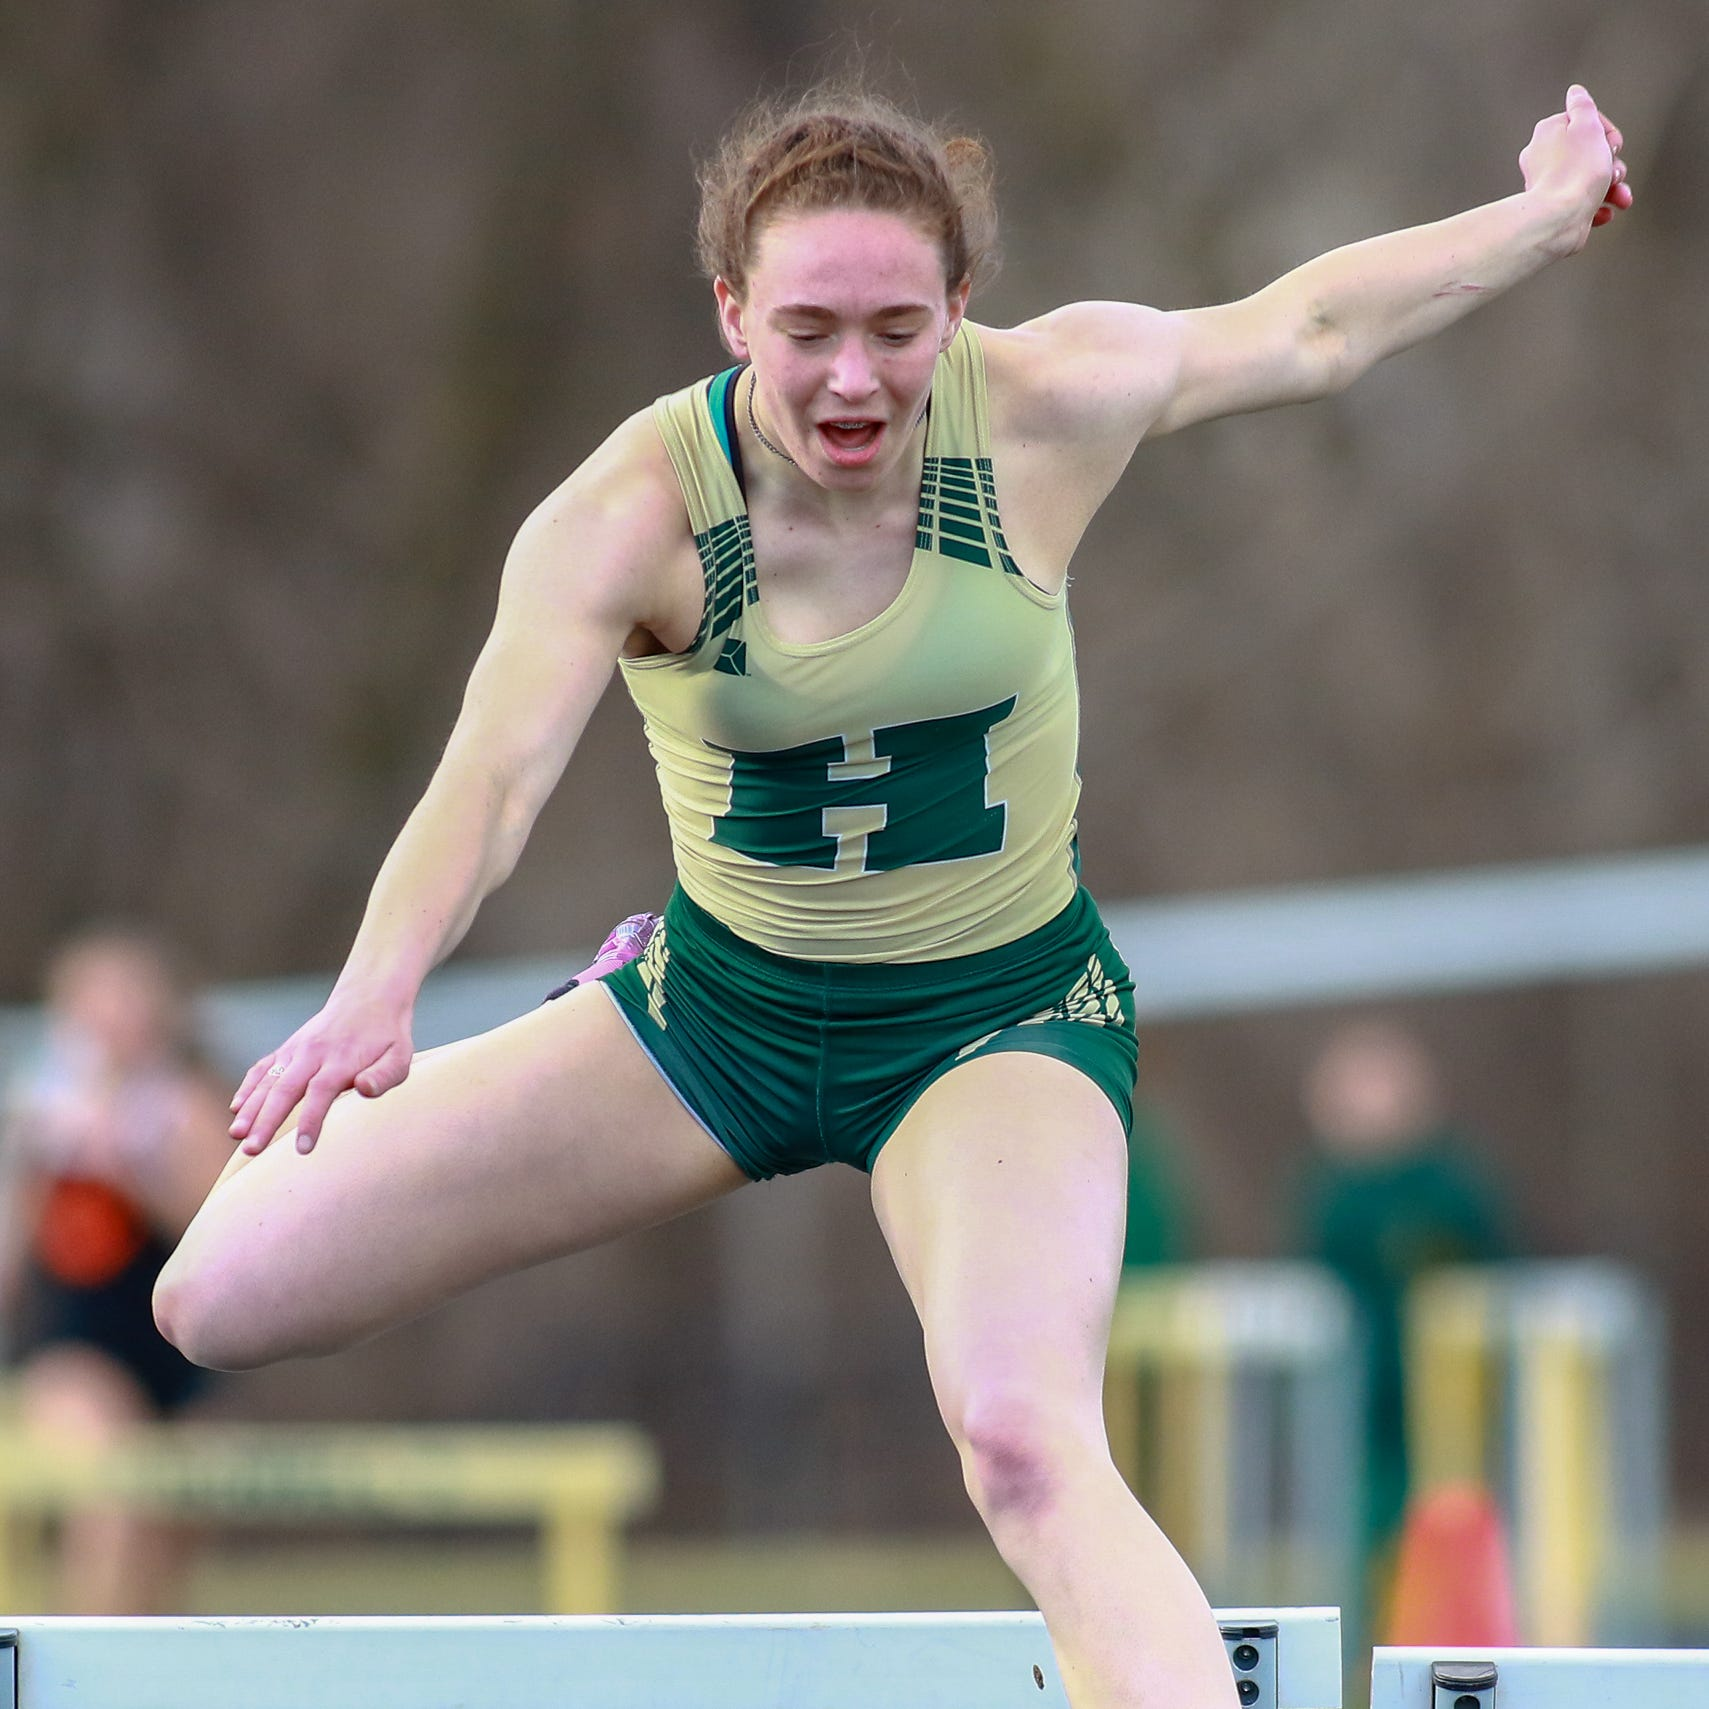 Brighton-Howell track and field meet features impressive hurdles debut, sibling rivalry